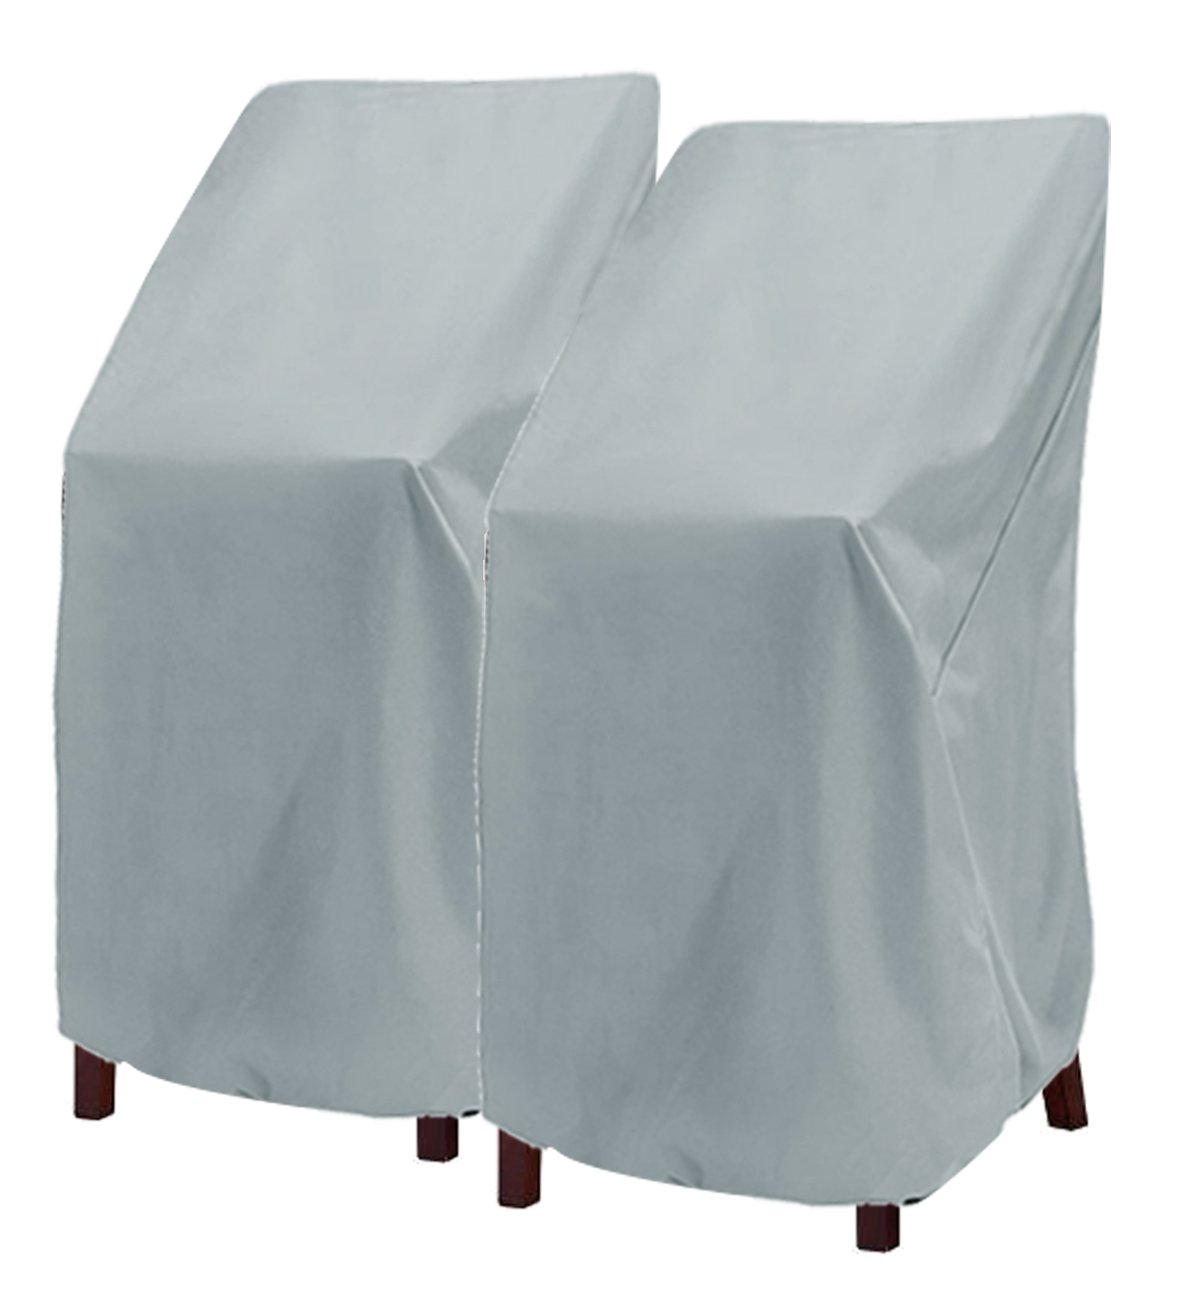 Buy Patio Chair Cover Highback Durable Waterproof Outdoor Bar